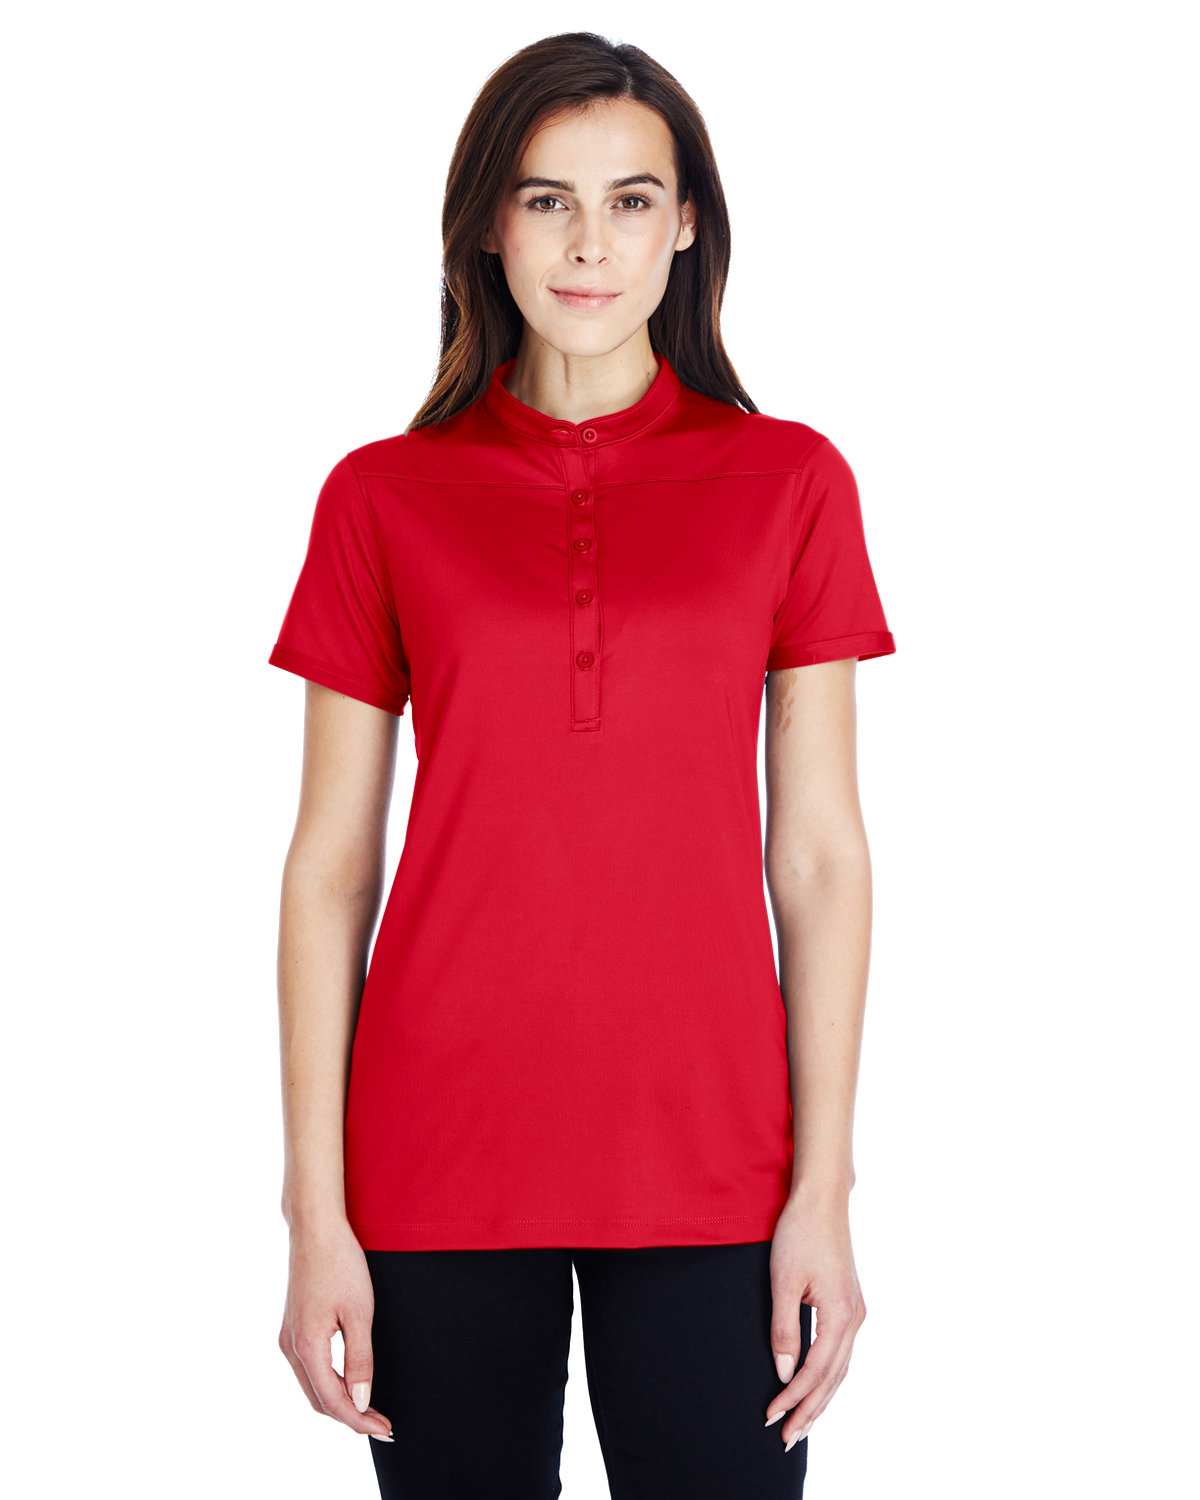 Under Armour SuperSale Ladies' Corporate Performance Polo 2.0 RED/ WHITE _600